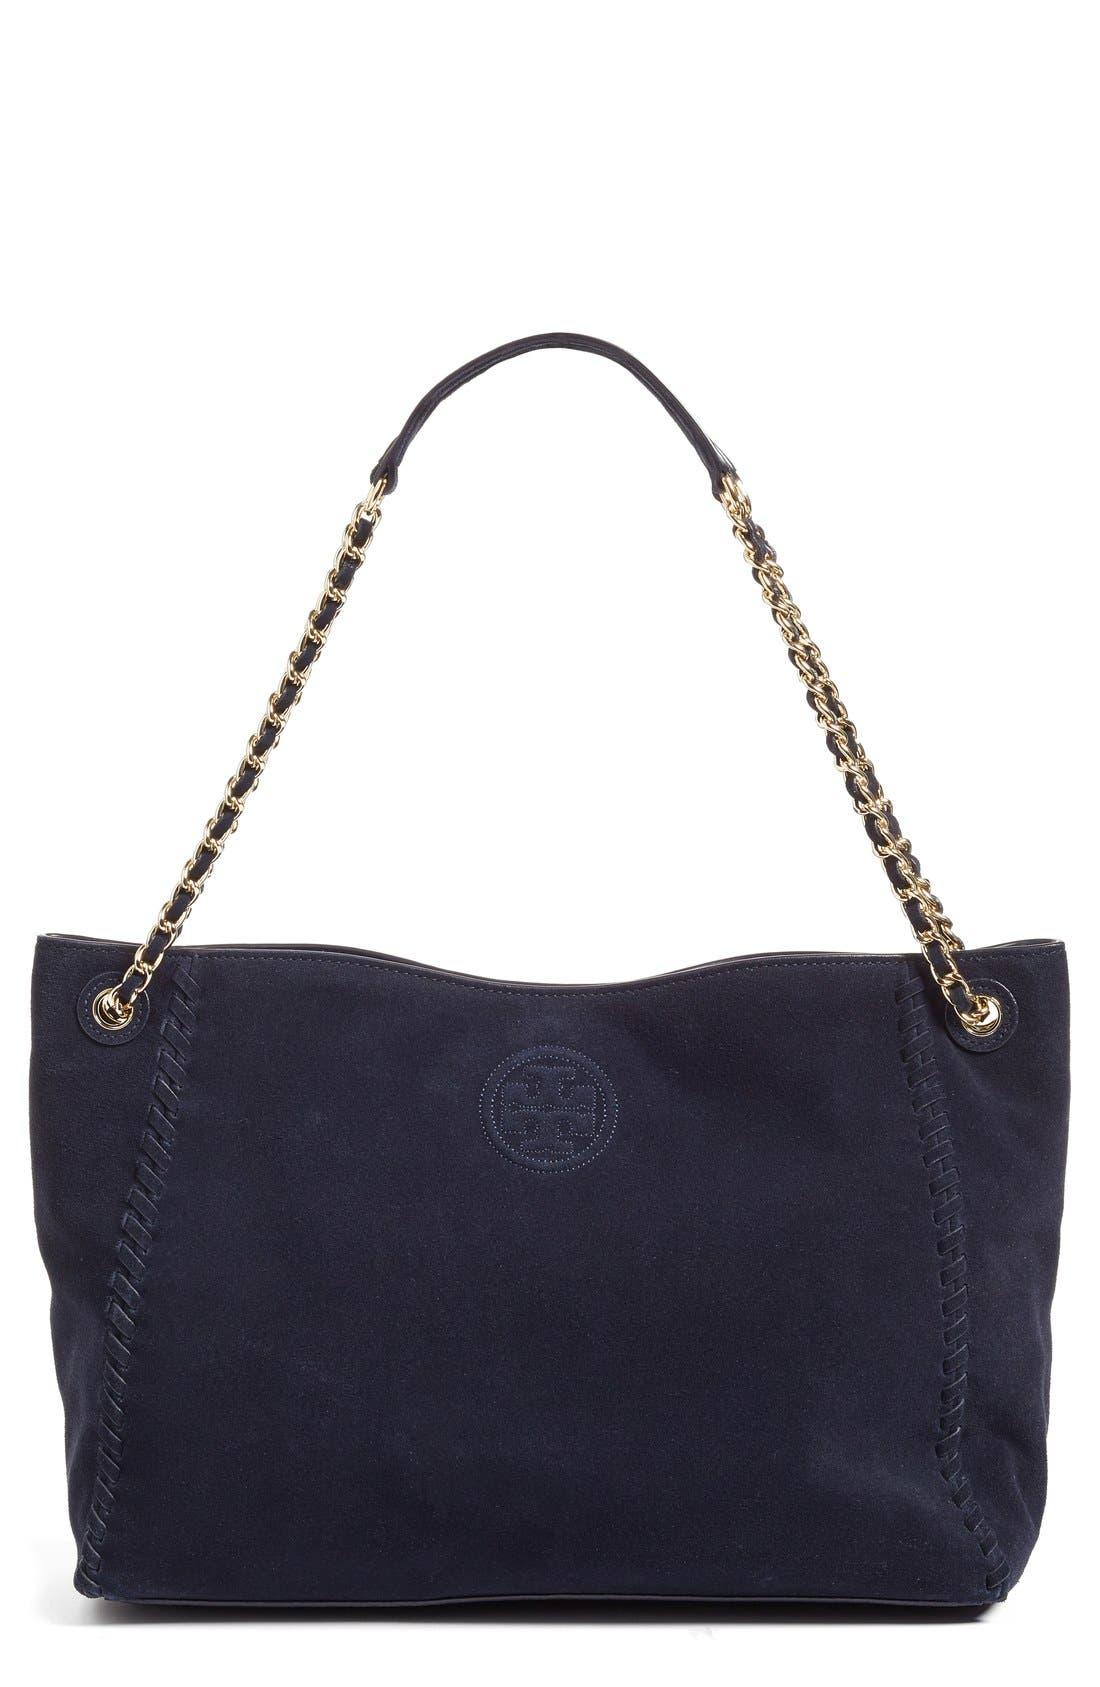 Main Image - Tory Burch 'Marion' Suede Tote